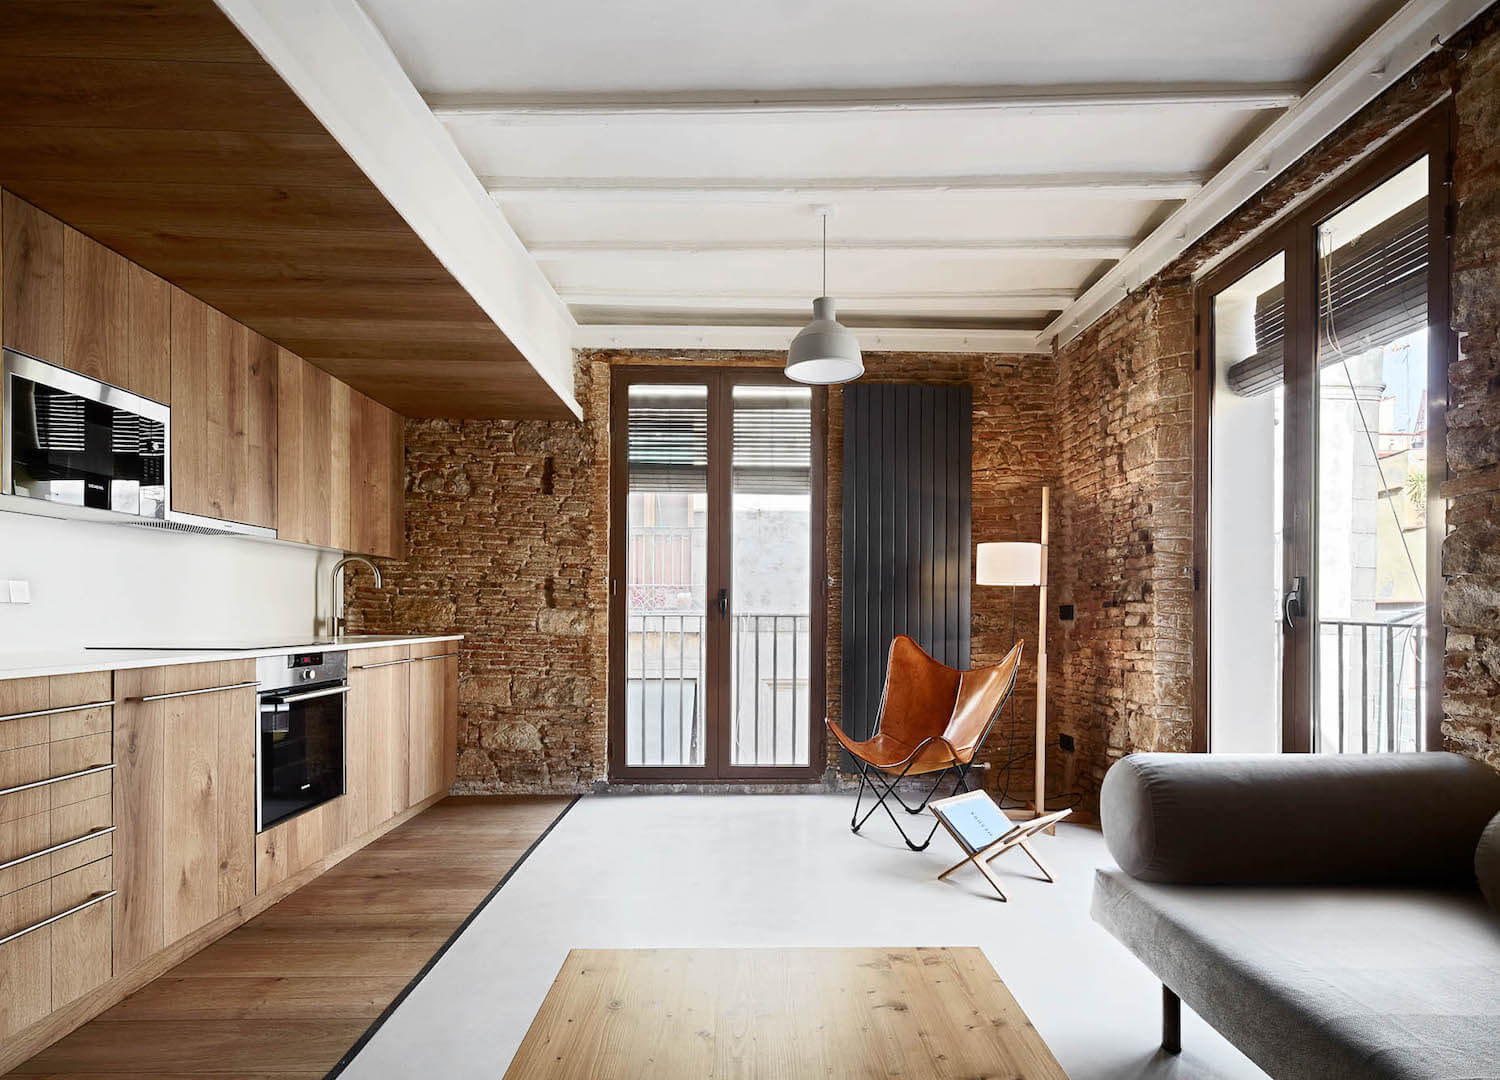 est living interiors borne apartments mesura architecture 2